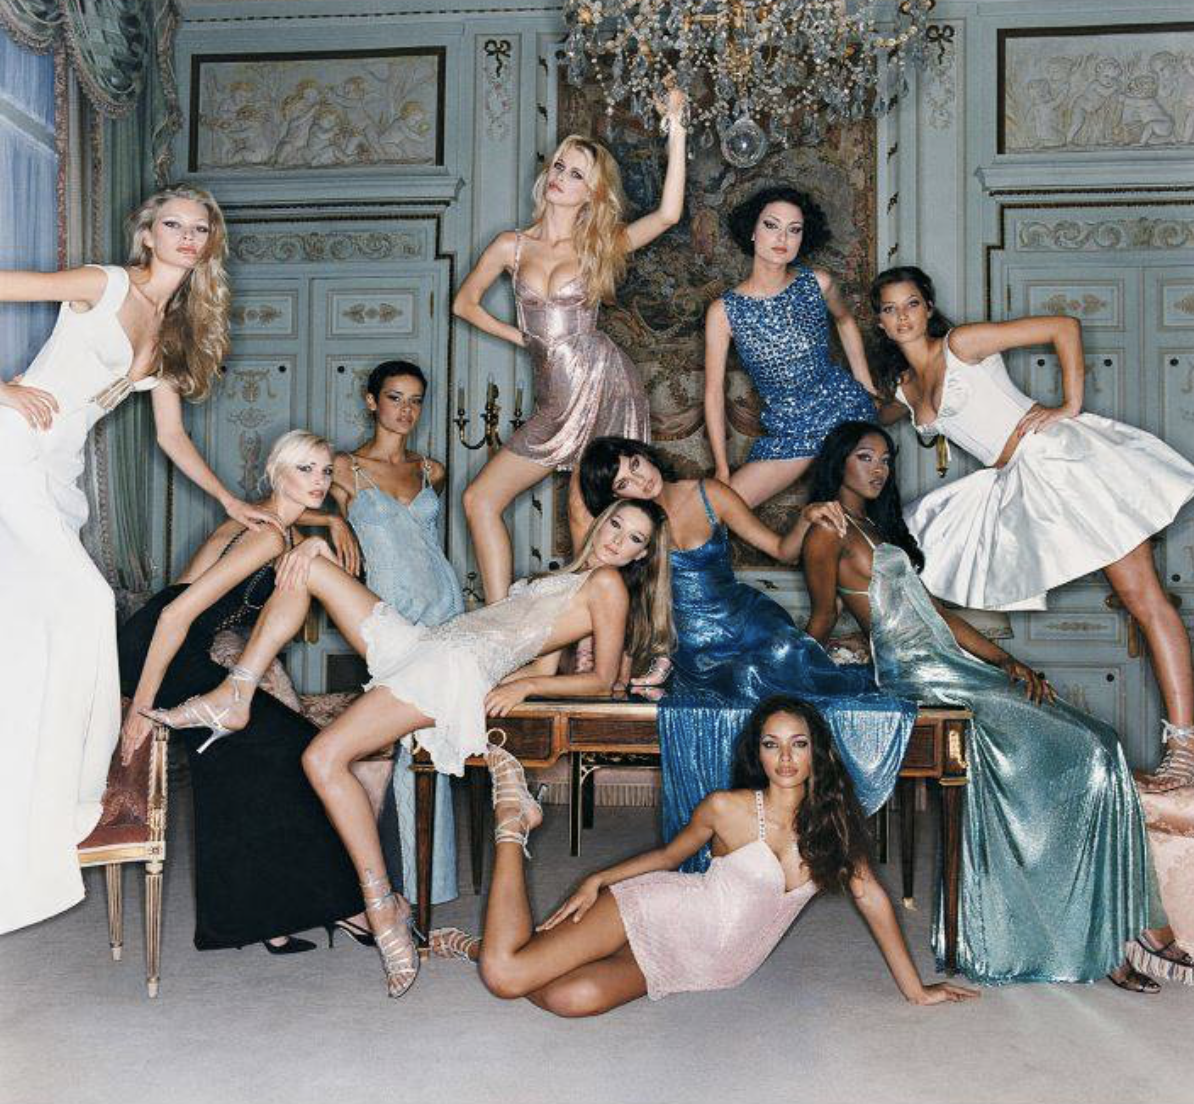 Supermodels by Michel Comte